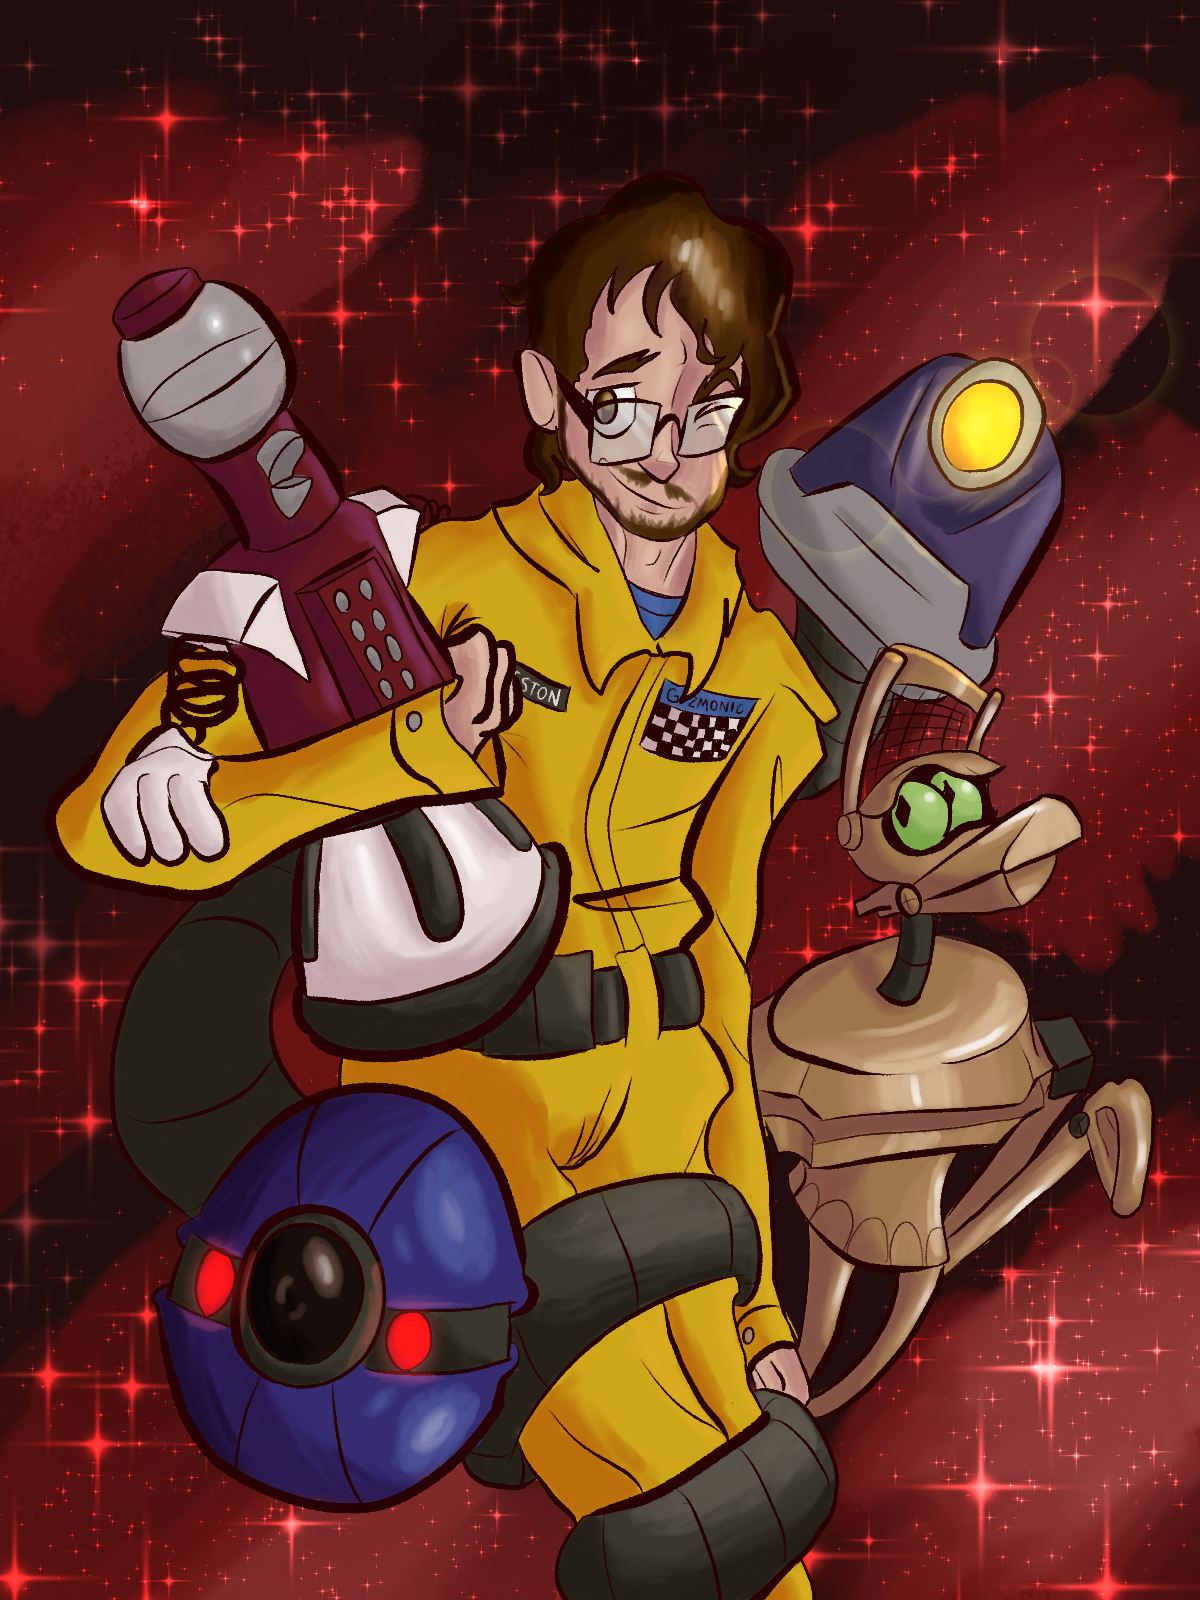 MST3K:We'll get used to you.